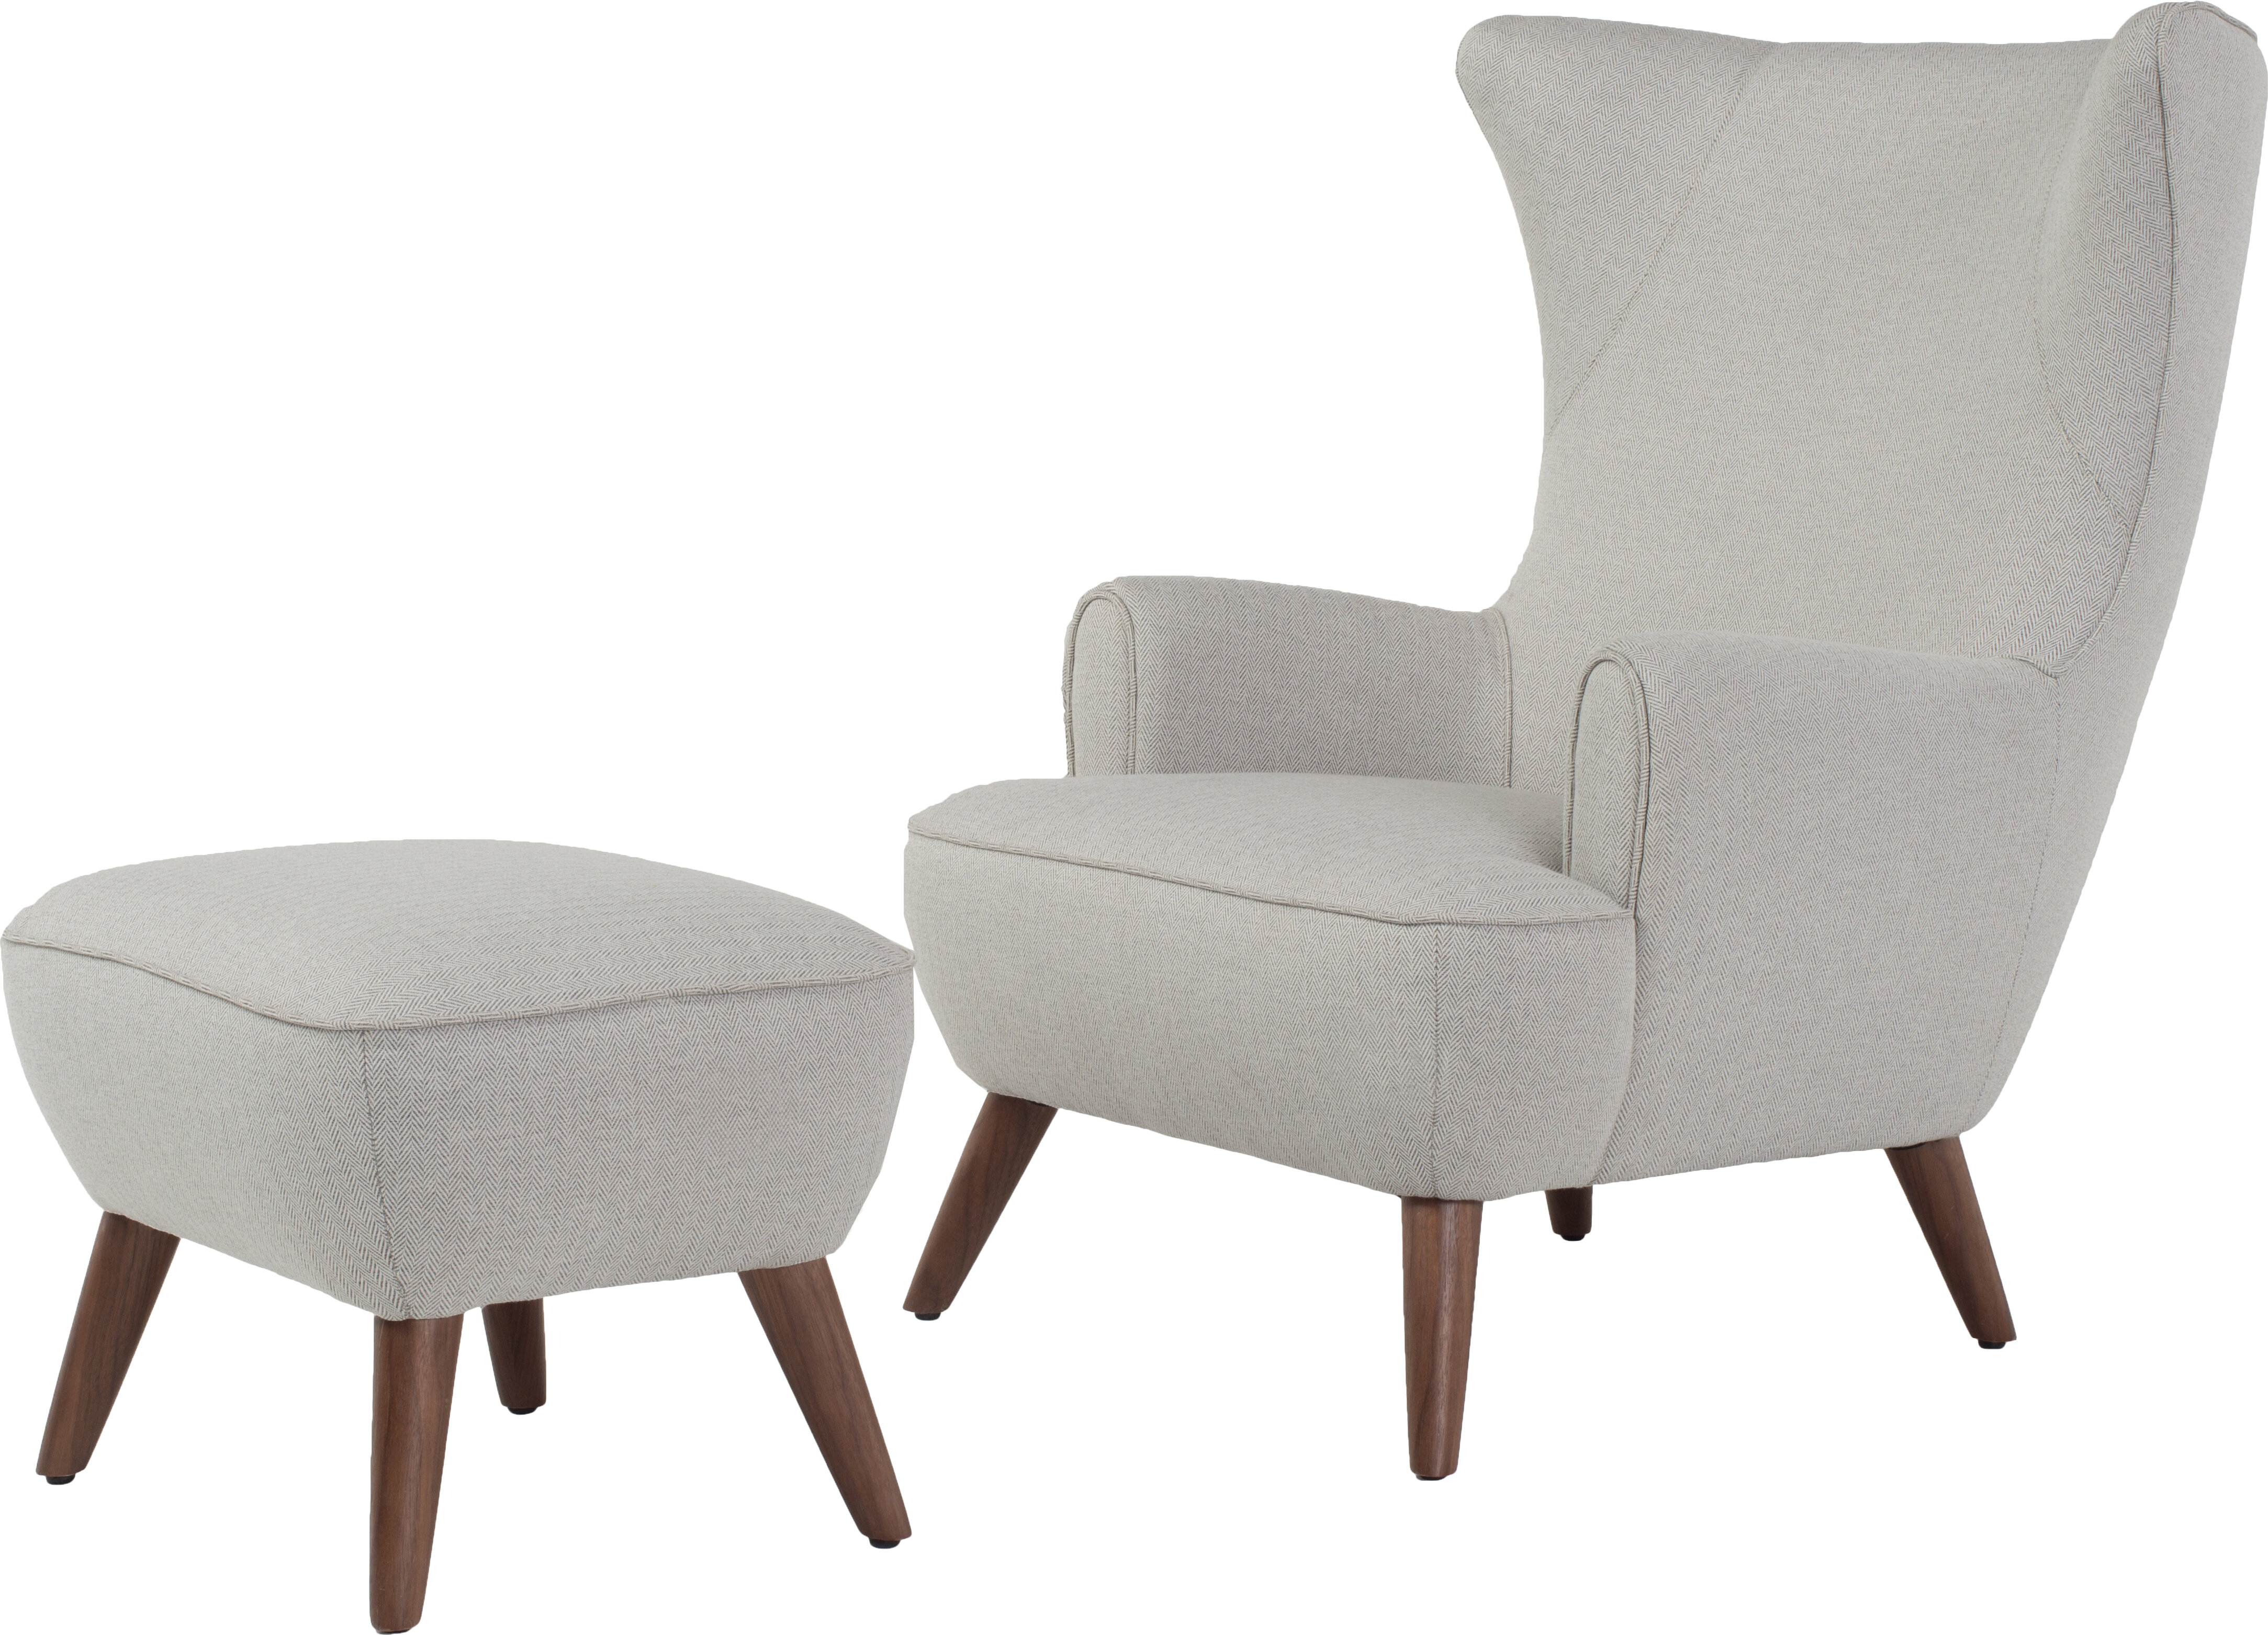 Wayfair Dining Room Chair Covers: Corrigan Studio Ruby High Back Wingback Chair And Ottoman